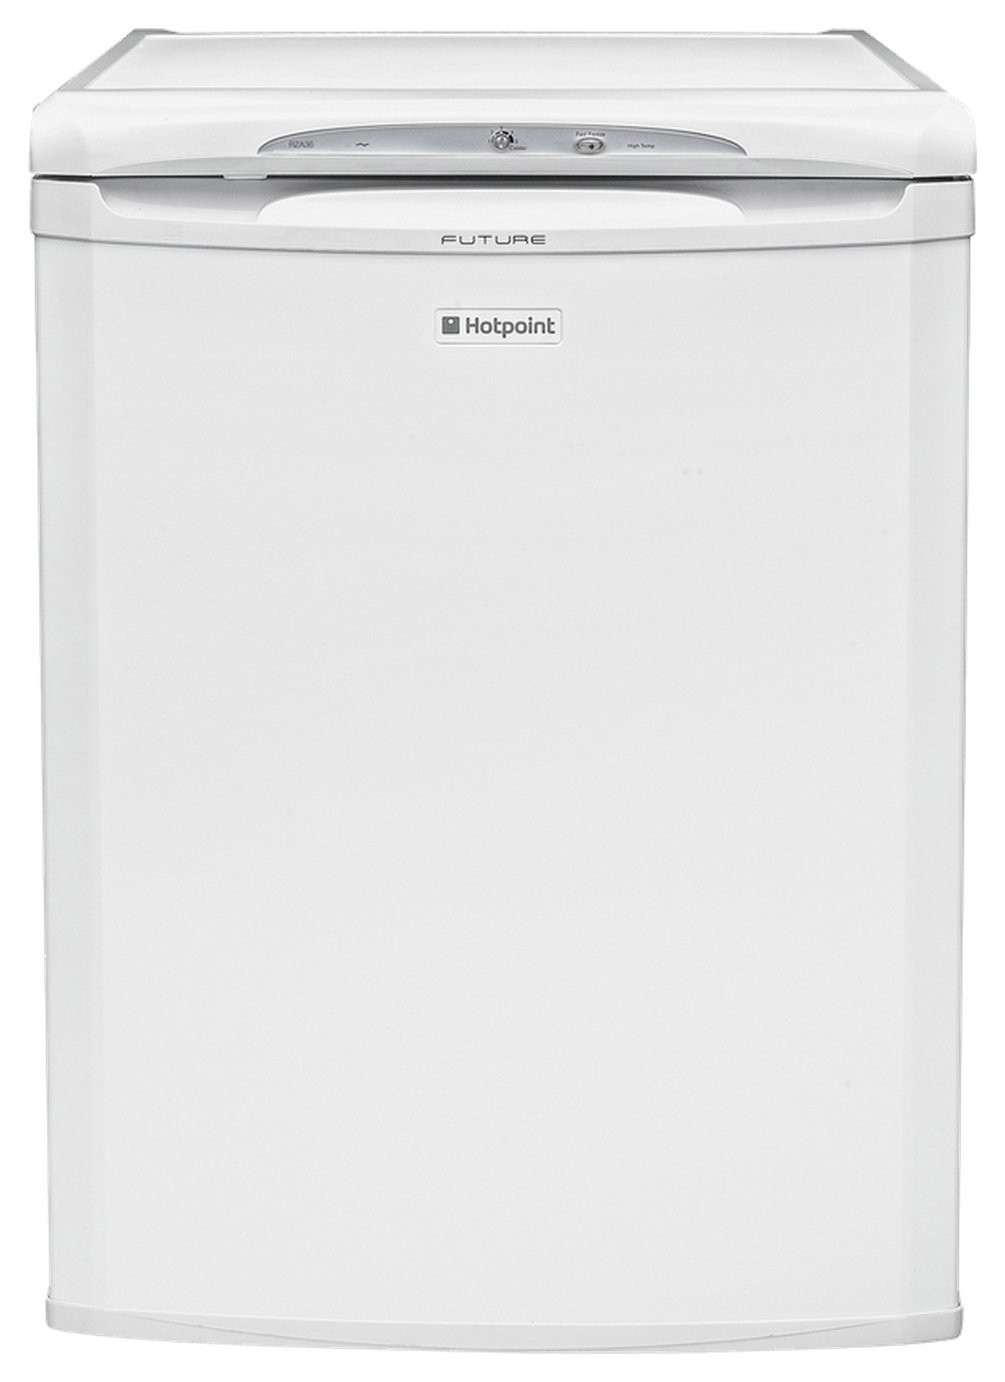 Hotpoint RZA36P.1 Under Counter Freezer - White